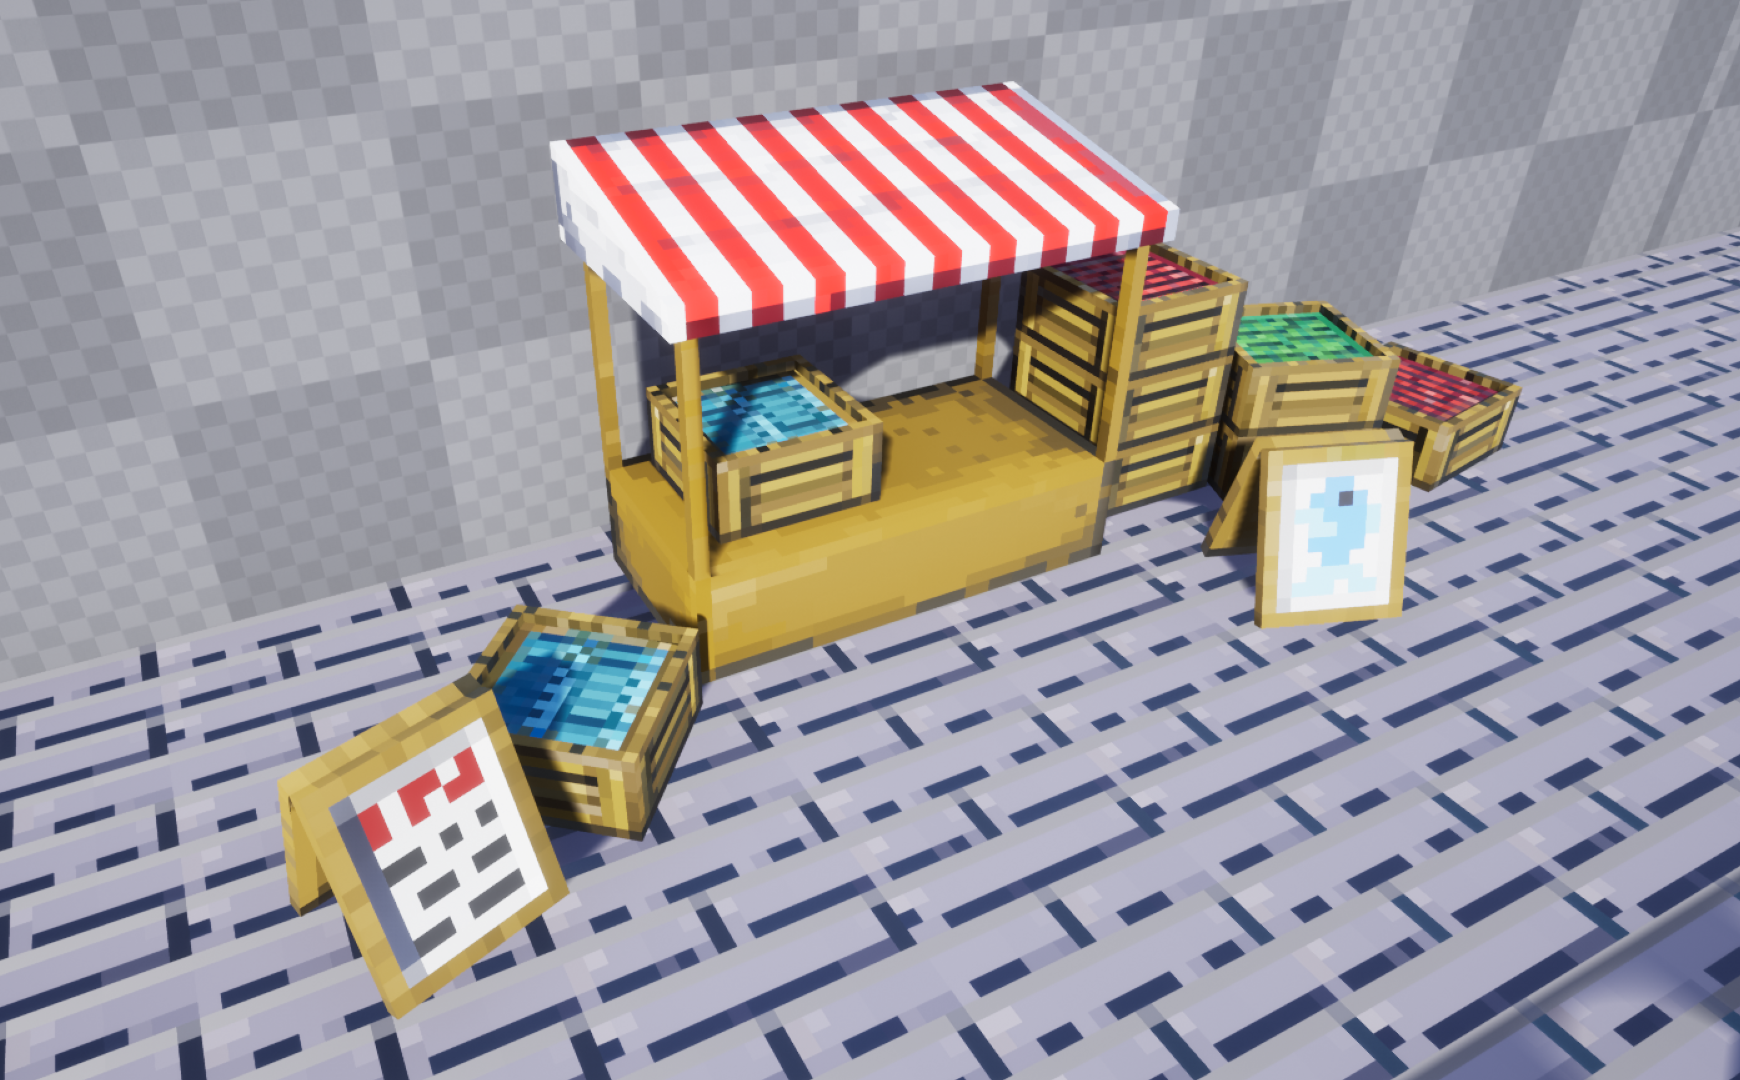 A market stall with boxes of food and signs, modeled in 3D and textured with giant chunky pixels.